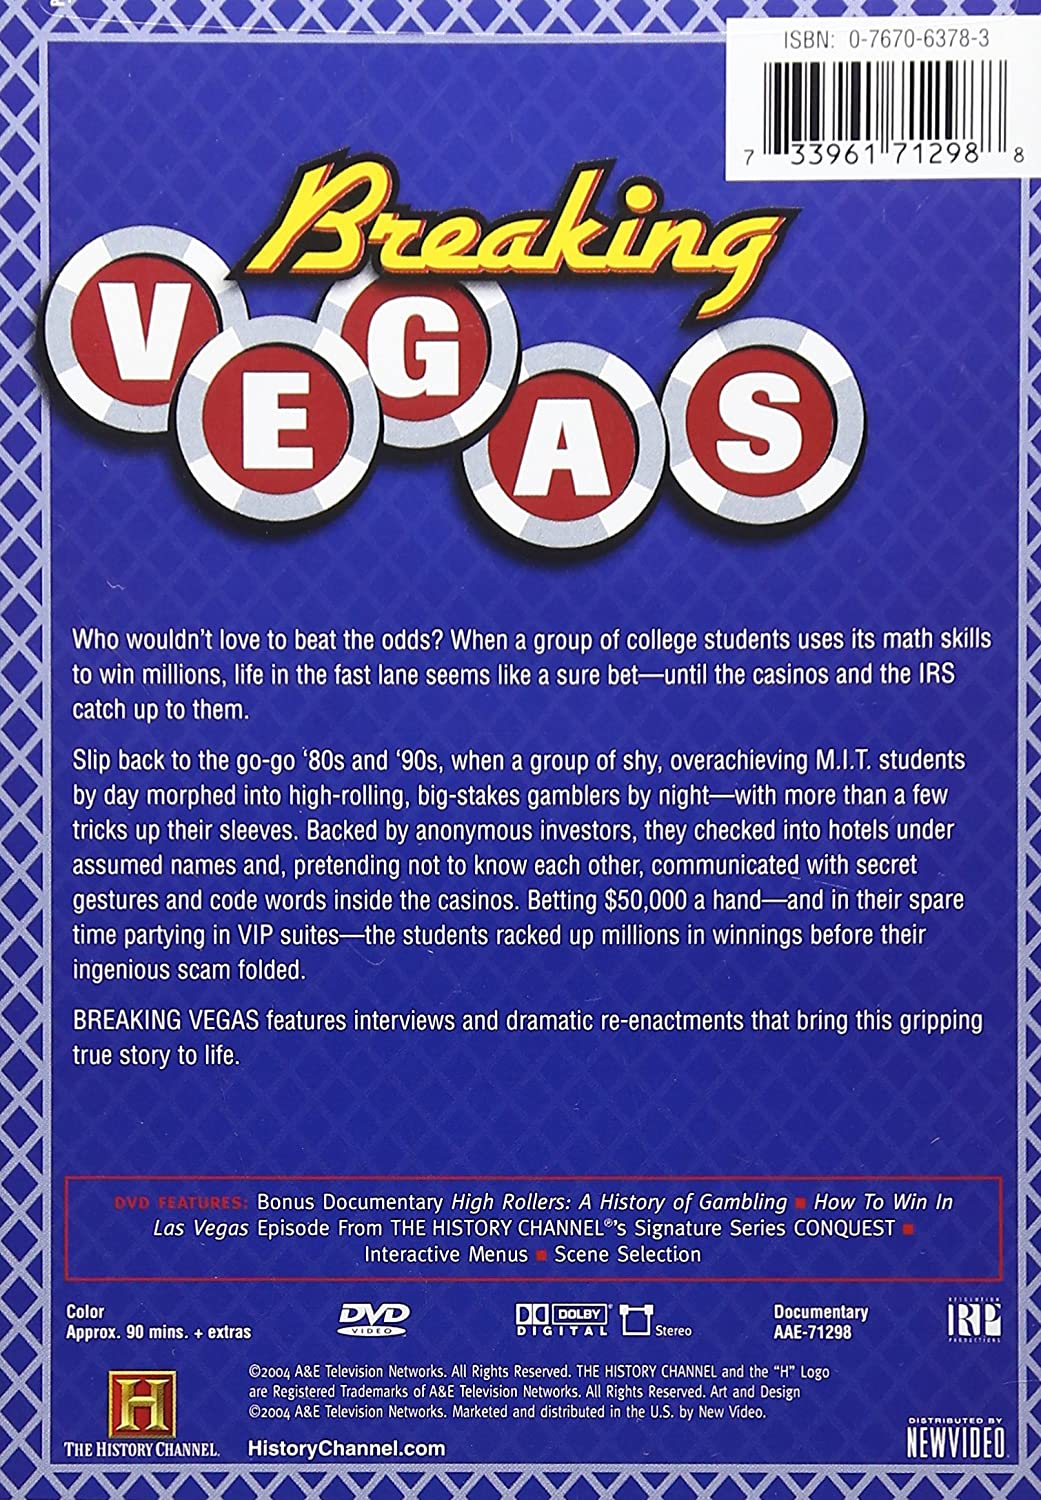 analysis breaking vegas history channel documentary Amazonca - buy breaking vegas (history channel) by a&e home video at a low price free shipping on qualified orders see reviews & details on a wide selection of blu-ray & dvds, both new & used.